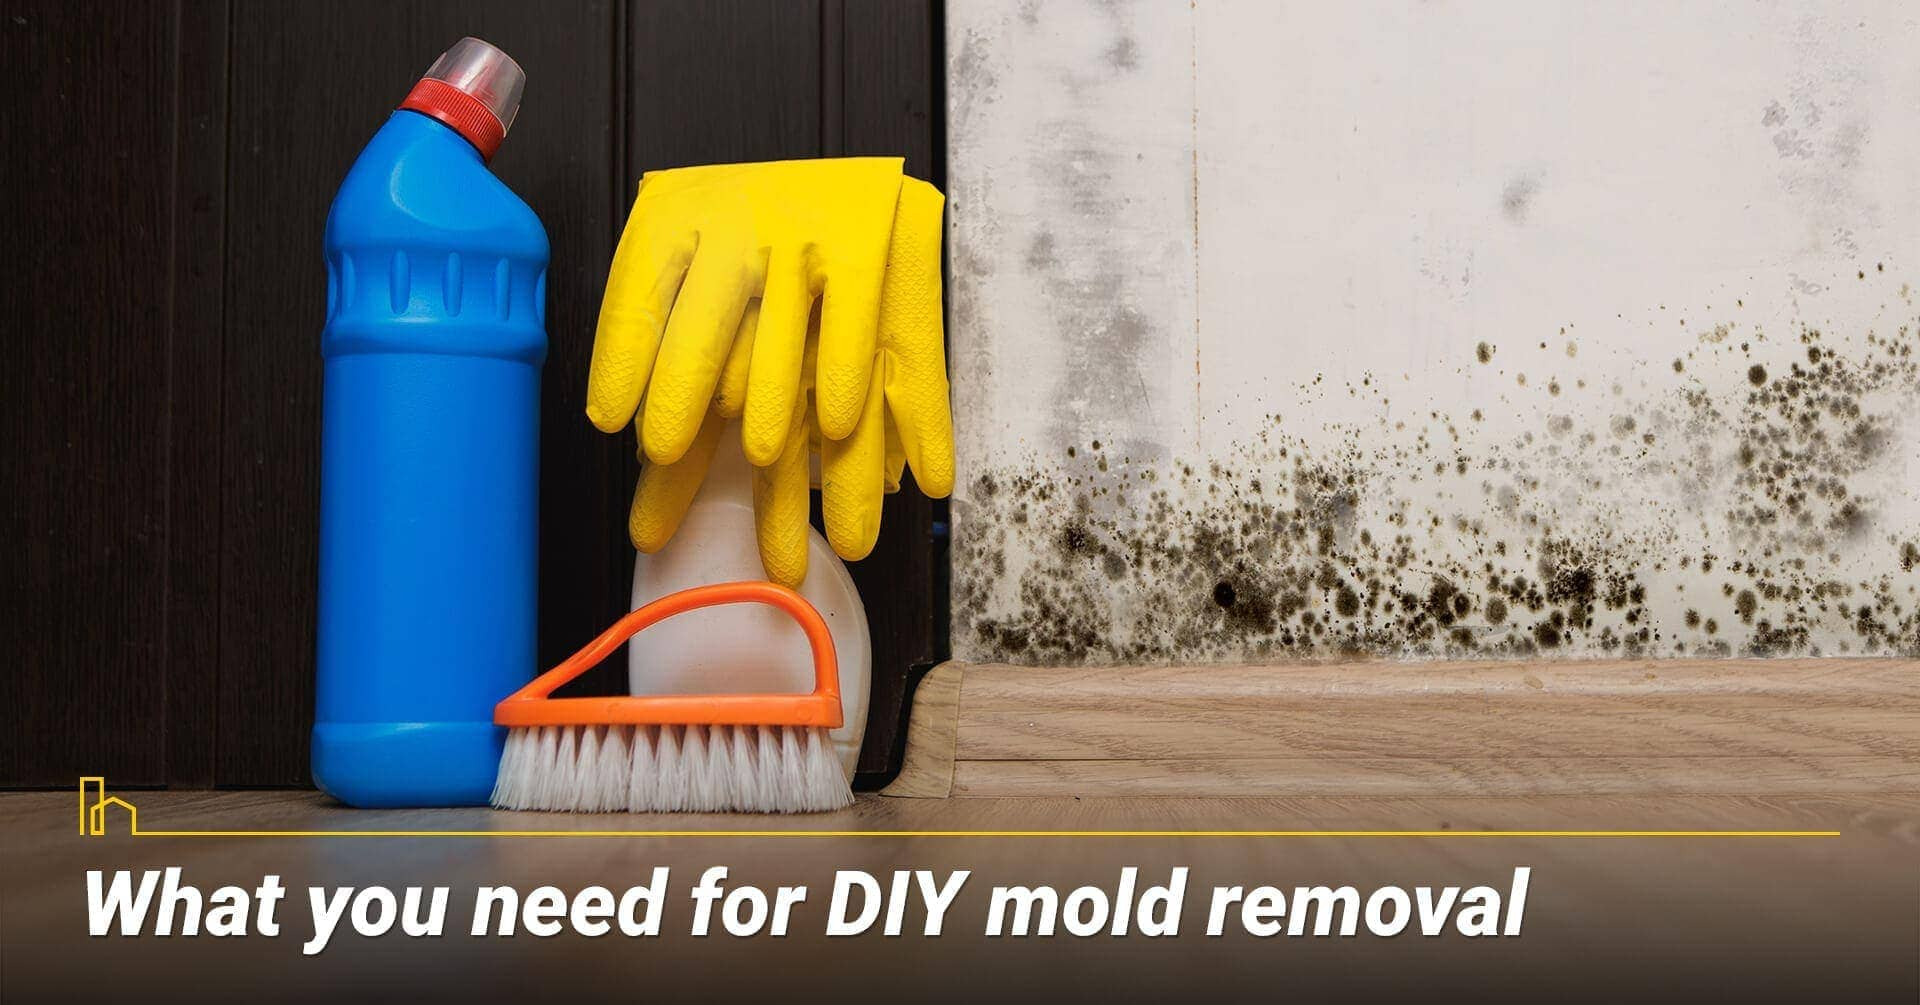 What you need for DIY mold removal